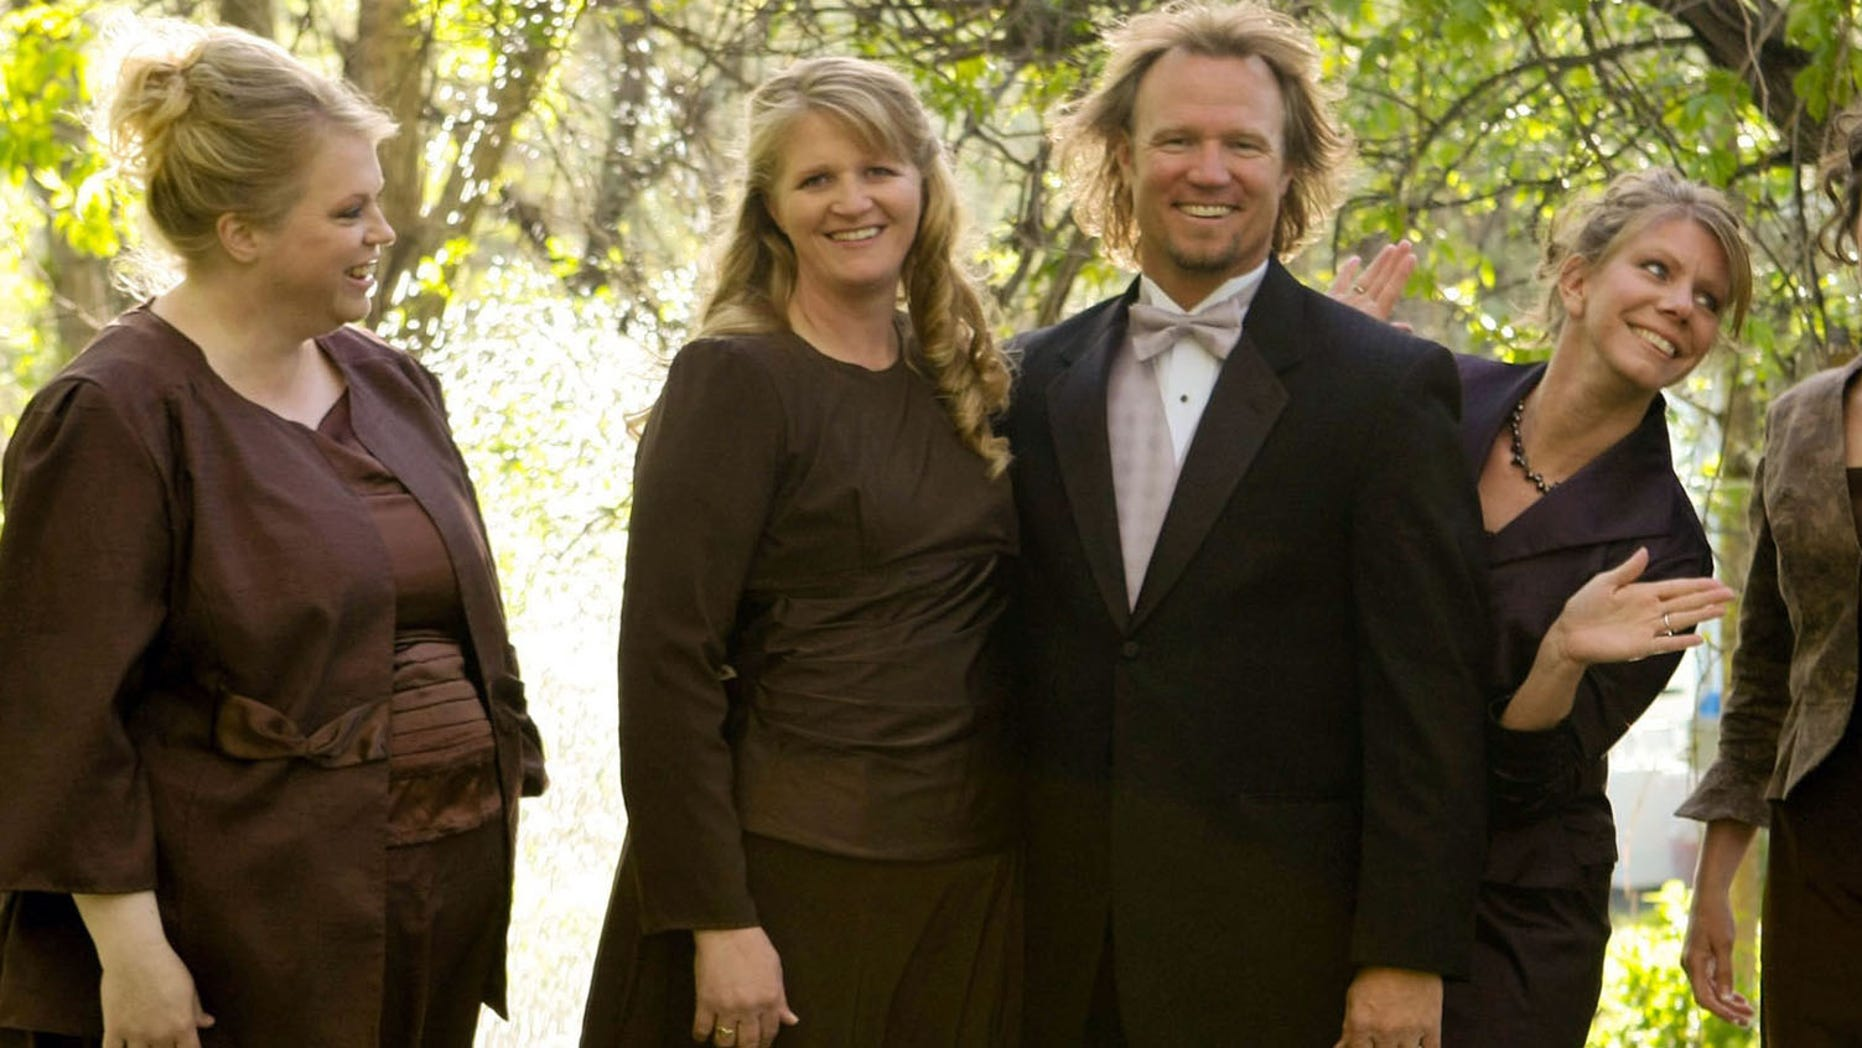 """Kody Brown, center, poses with his wives, from left, Janelle, Christine, Meri, and Robyn in a promotional photo for TLC's reality TV show, """"Sister Wives."""""""